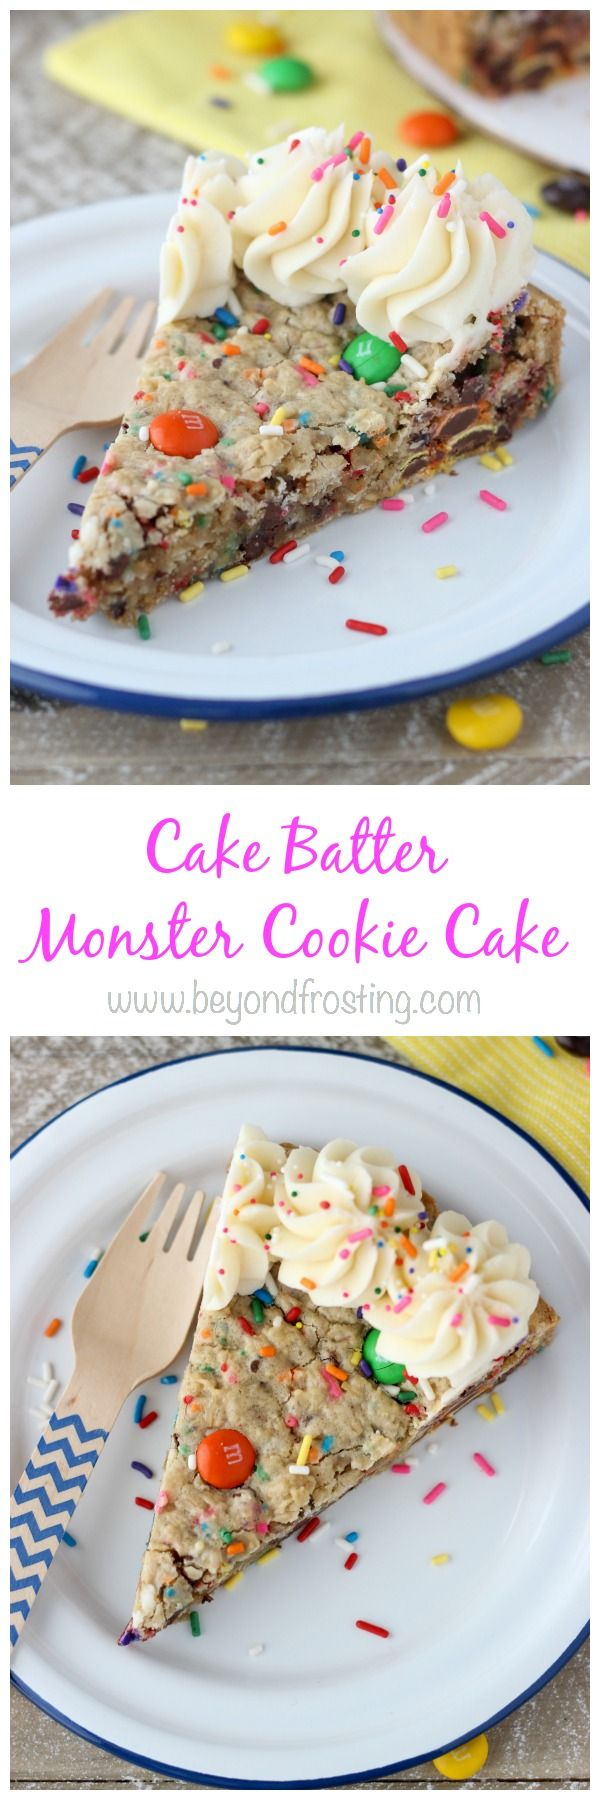 """""""Grab a fork and sink your teeth into this CAKE BATTER MONSTER COOKIE CAKE. is an cake batter oatmeal cookie with MnMs and sprinkles. It's topped with a little vanilla buttercream."""